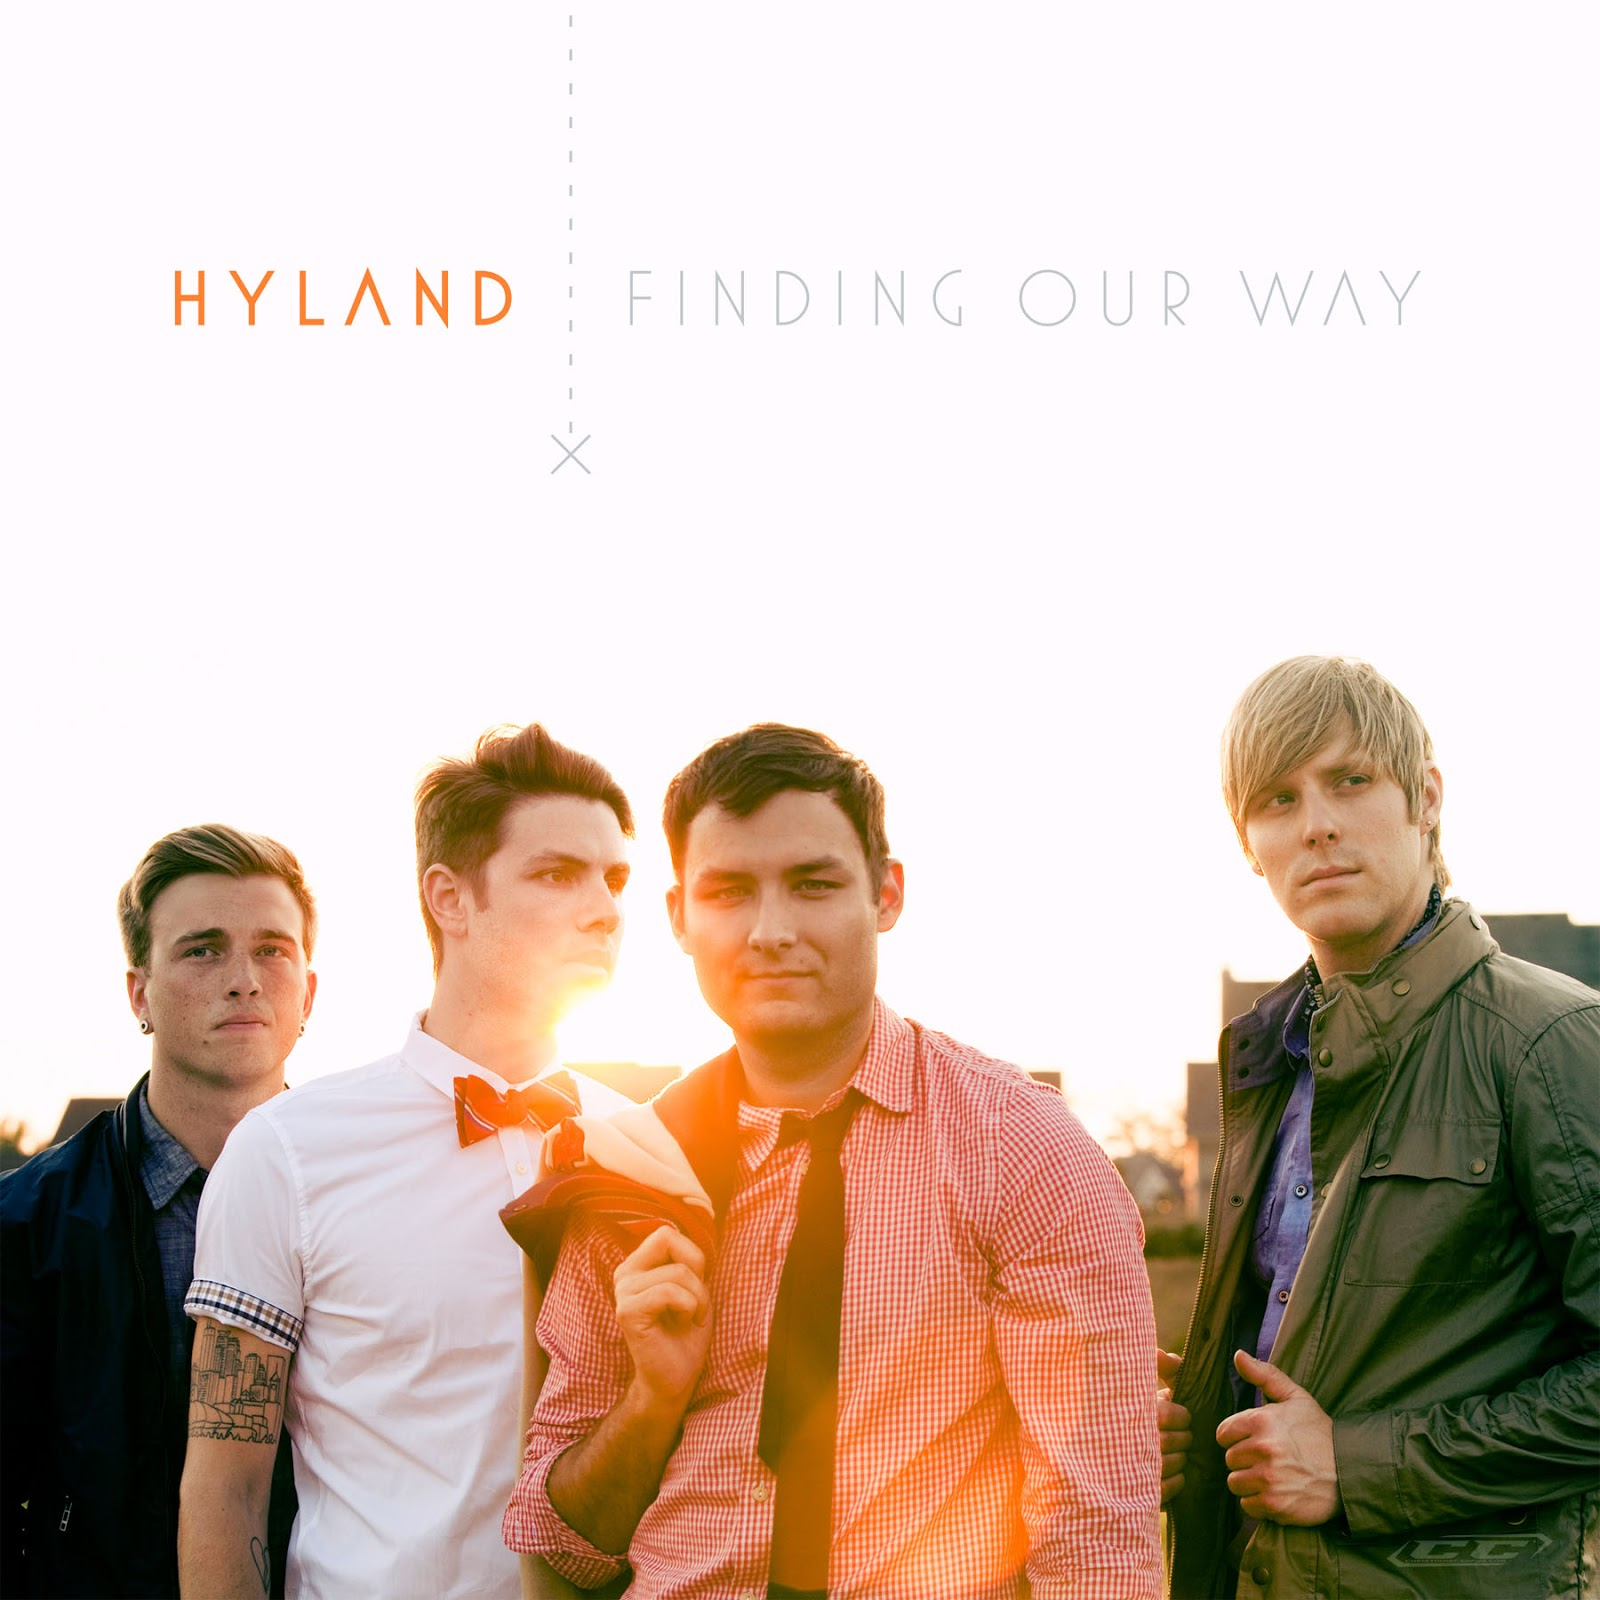 Hyland - Finding Our Way 2012 English Christian Album Download